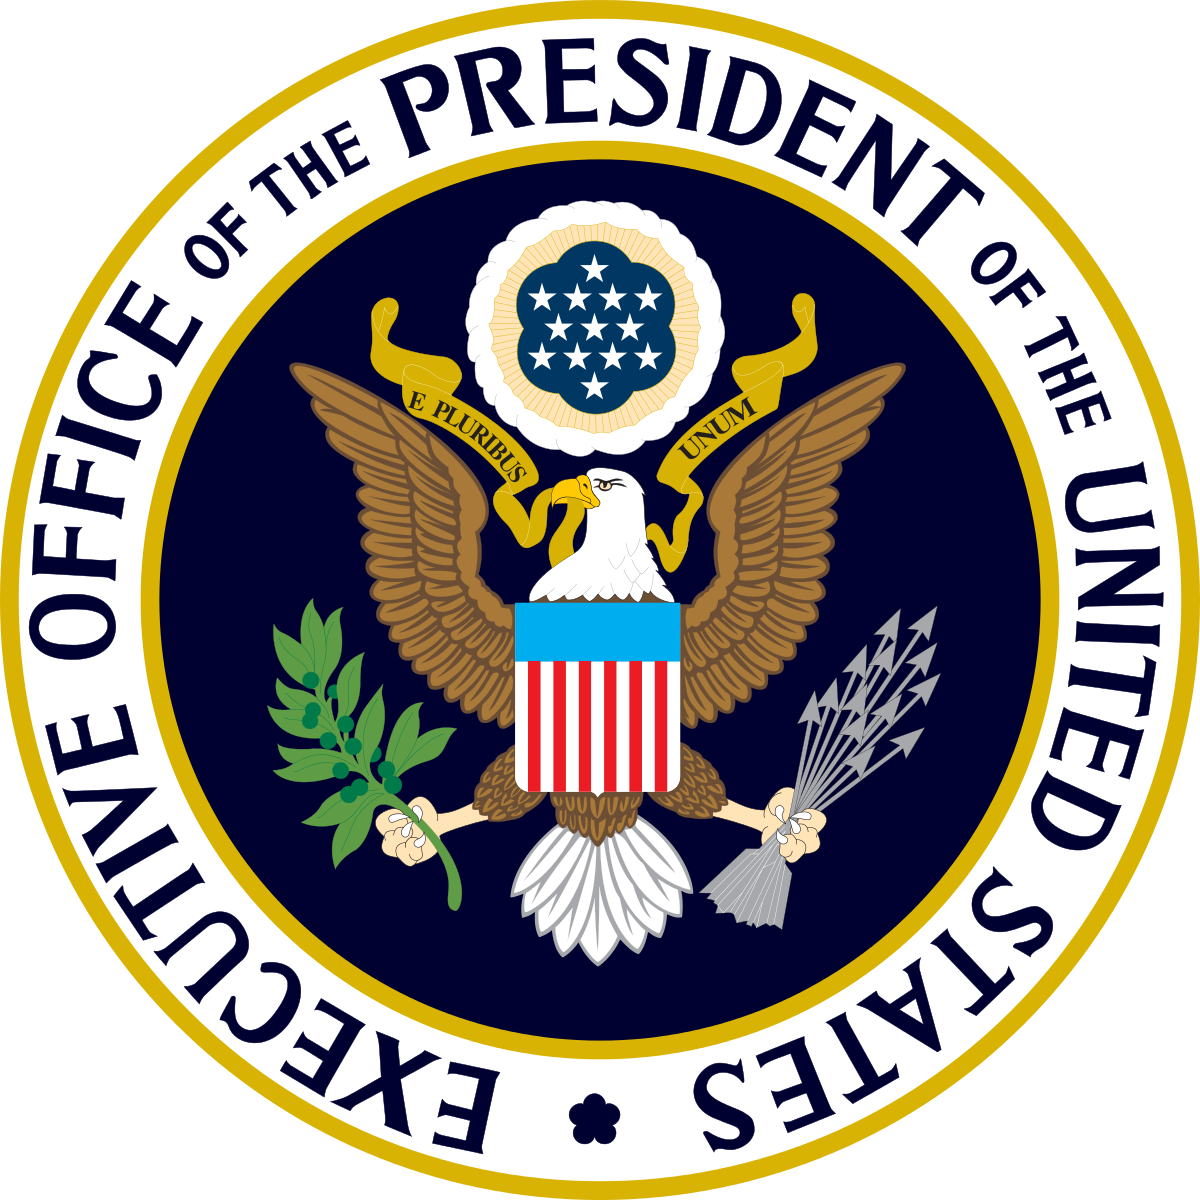 Executive Office of the President of the United States.